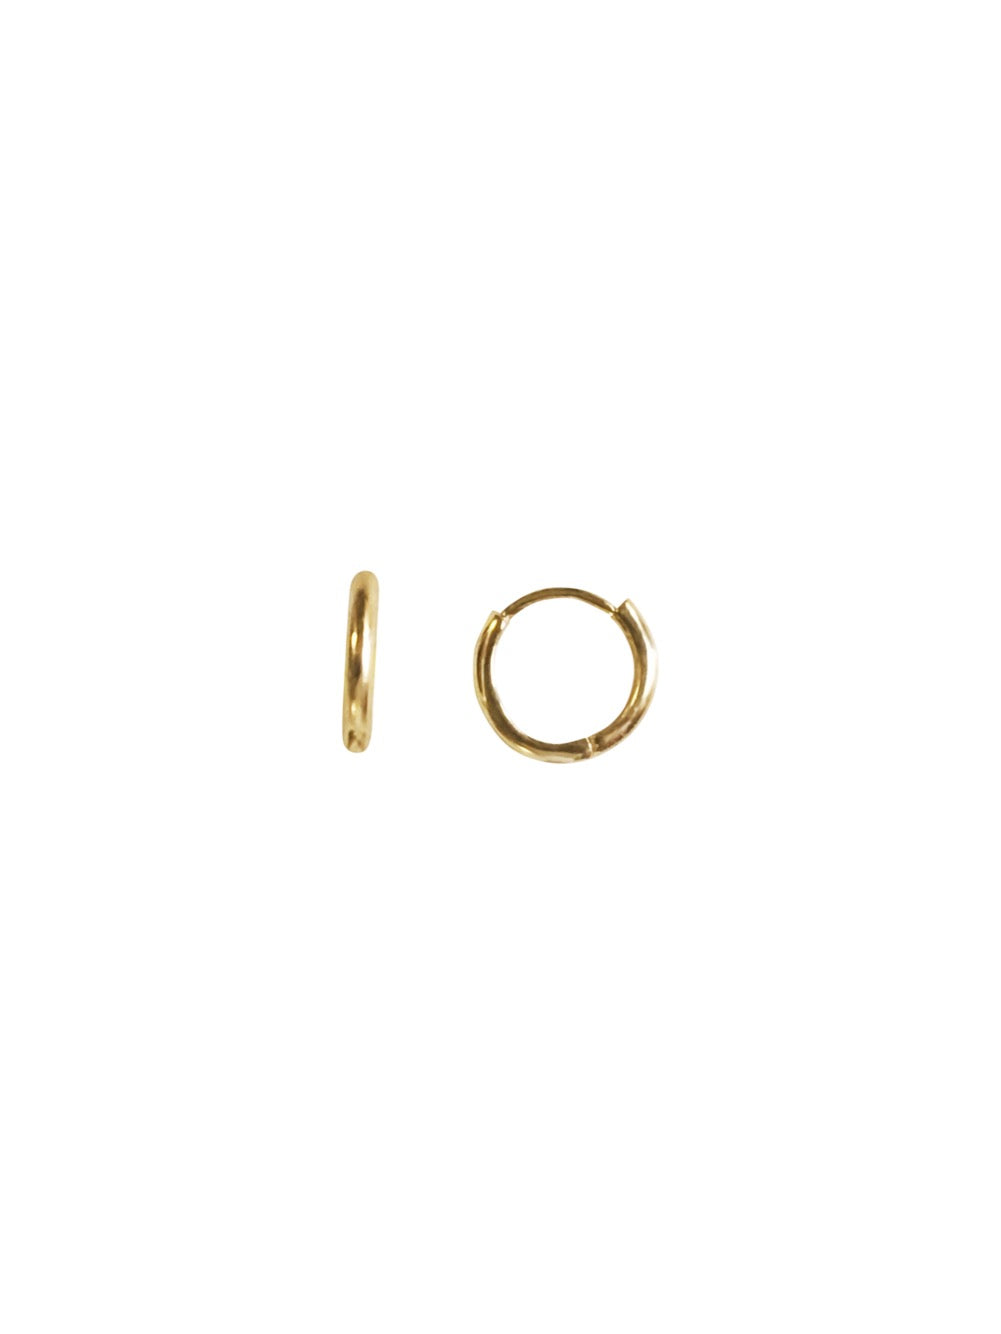 14KT Gold Mini Huggie Earrings